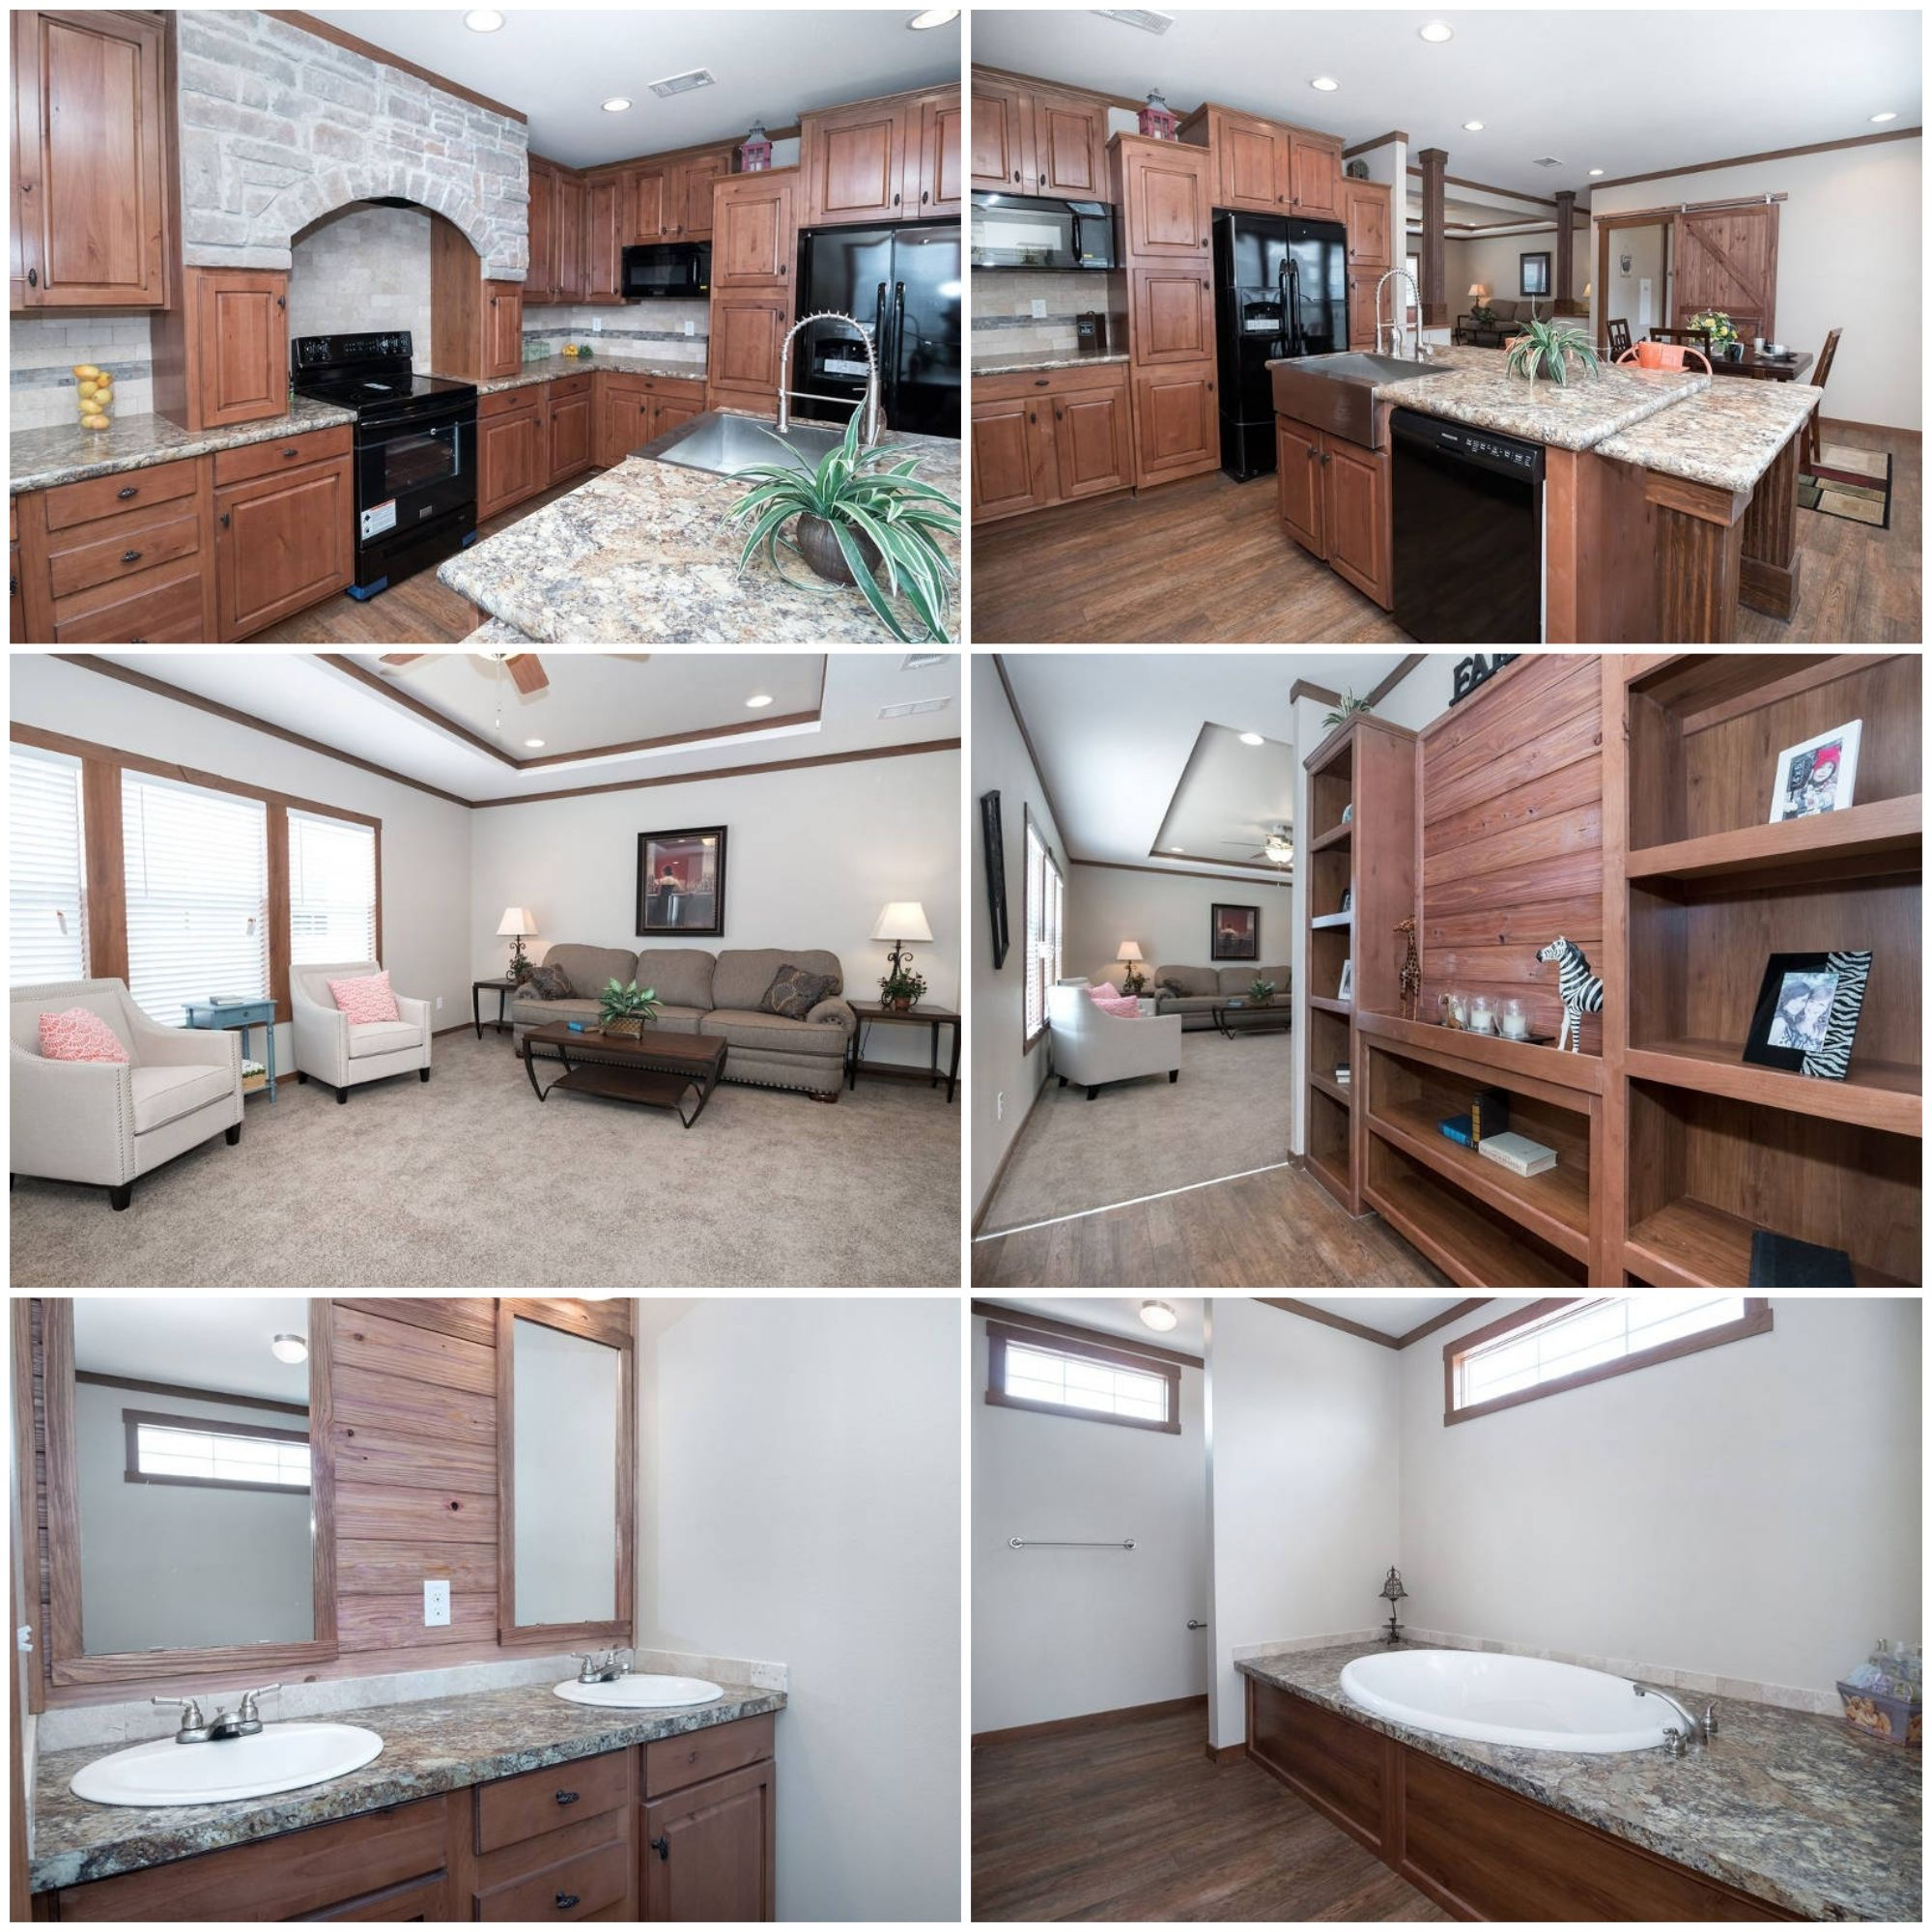 3 Bed 2 Bath Clayton St Louis Remodeling Mobile Homes Modular Homes Home Bedroom bath double wide